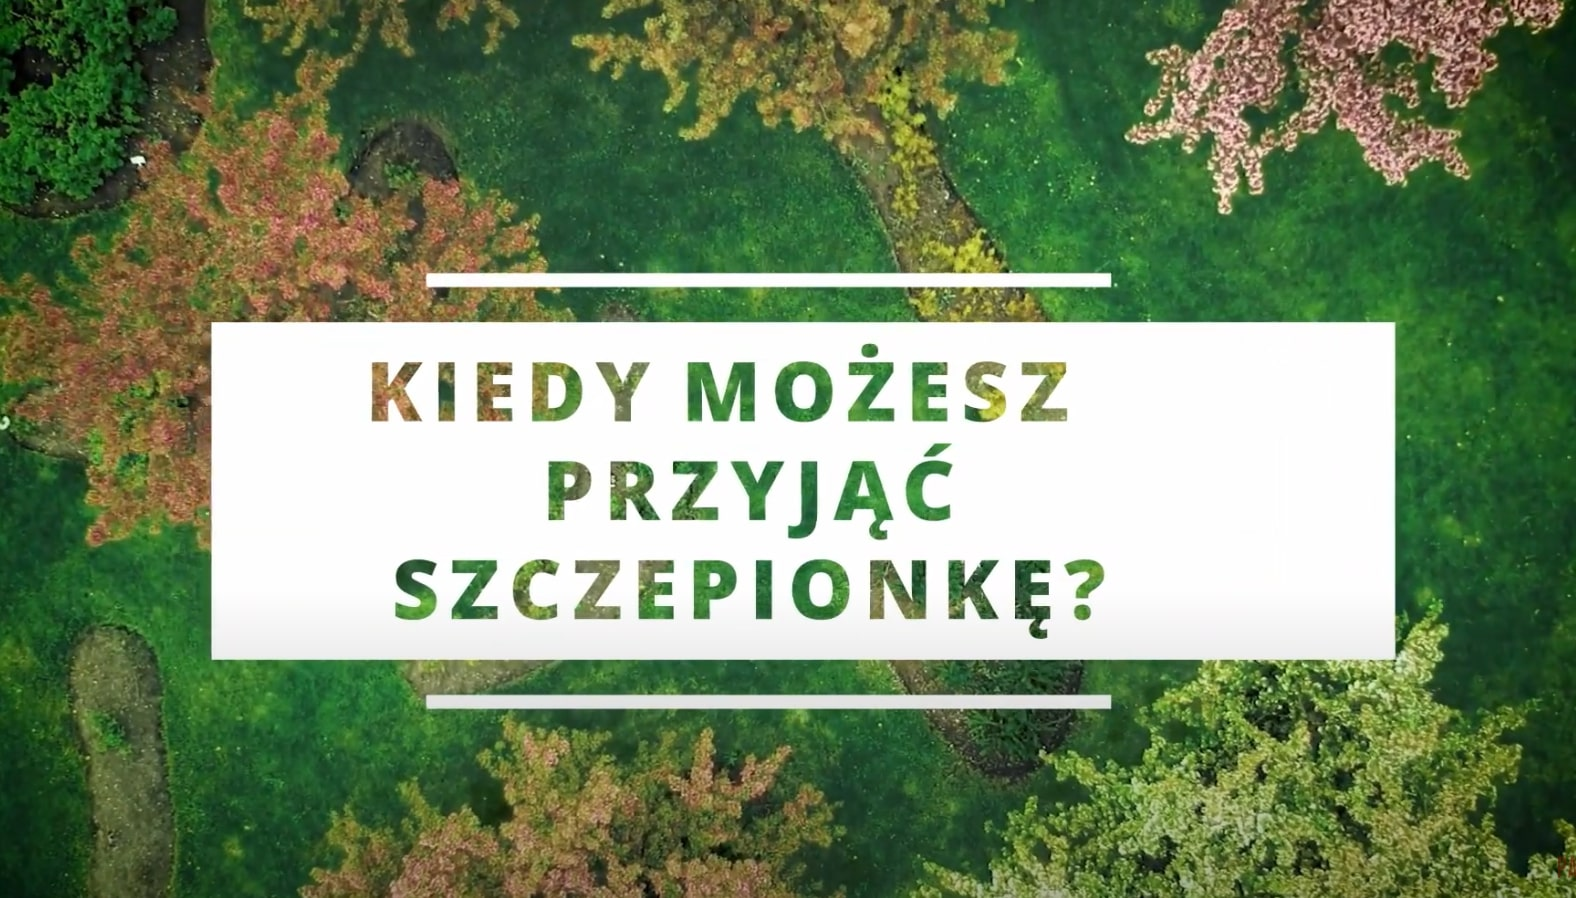 Polish - When Can You Get a Covid Vaccine? (Norway - When Can You Get a Covid Vaccine?